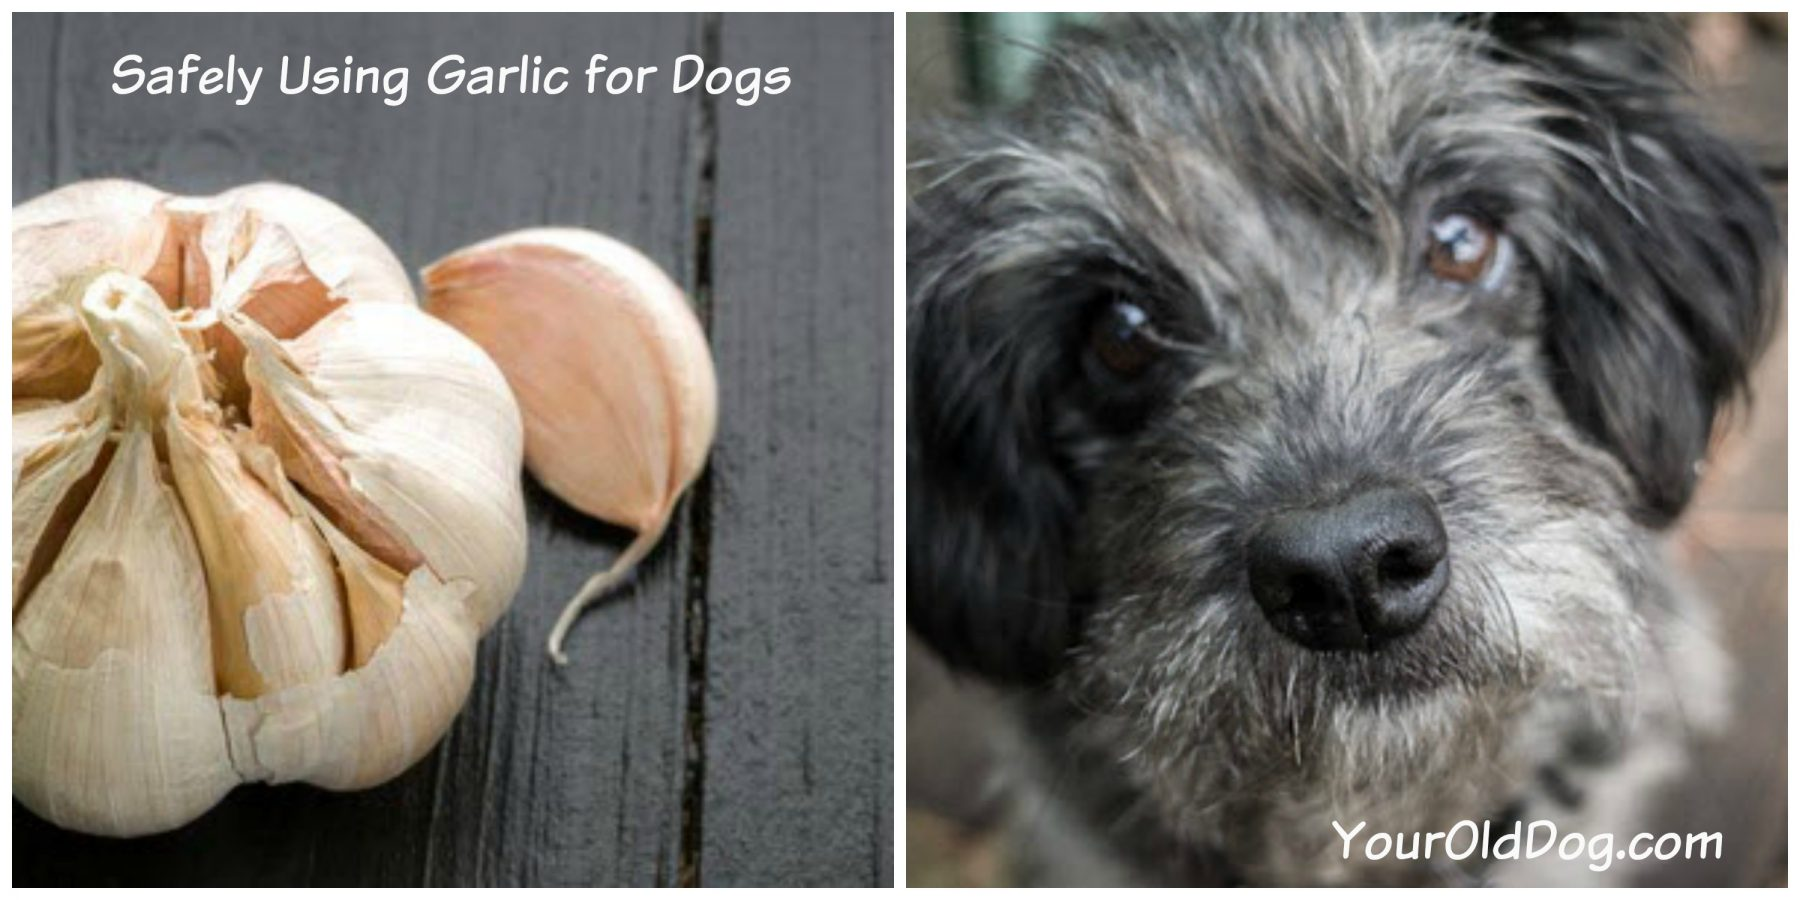 Garlic for dogs and how to safely use it fandeluxe Image collections